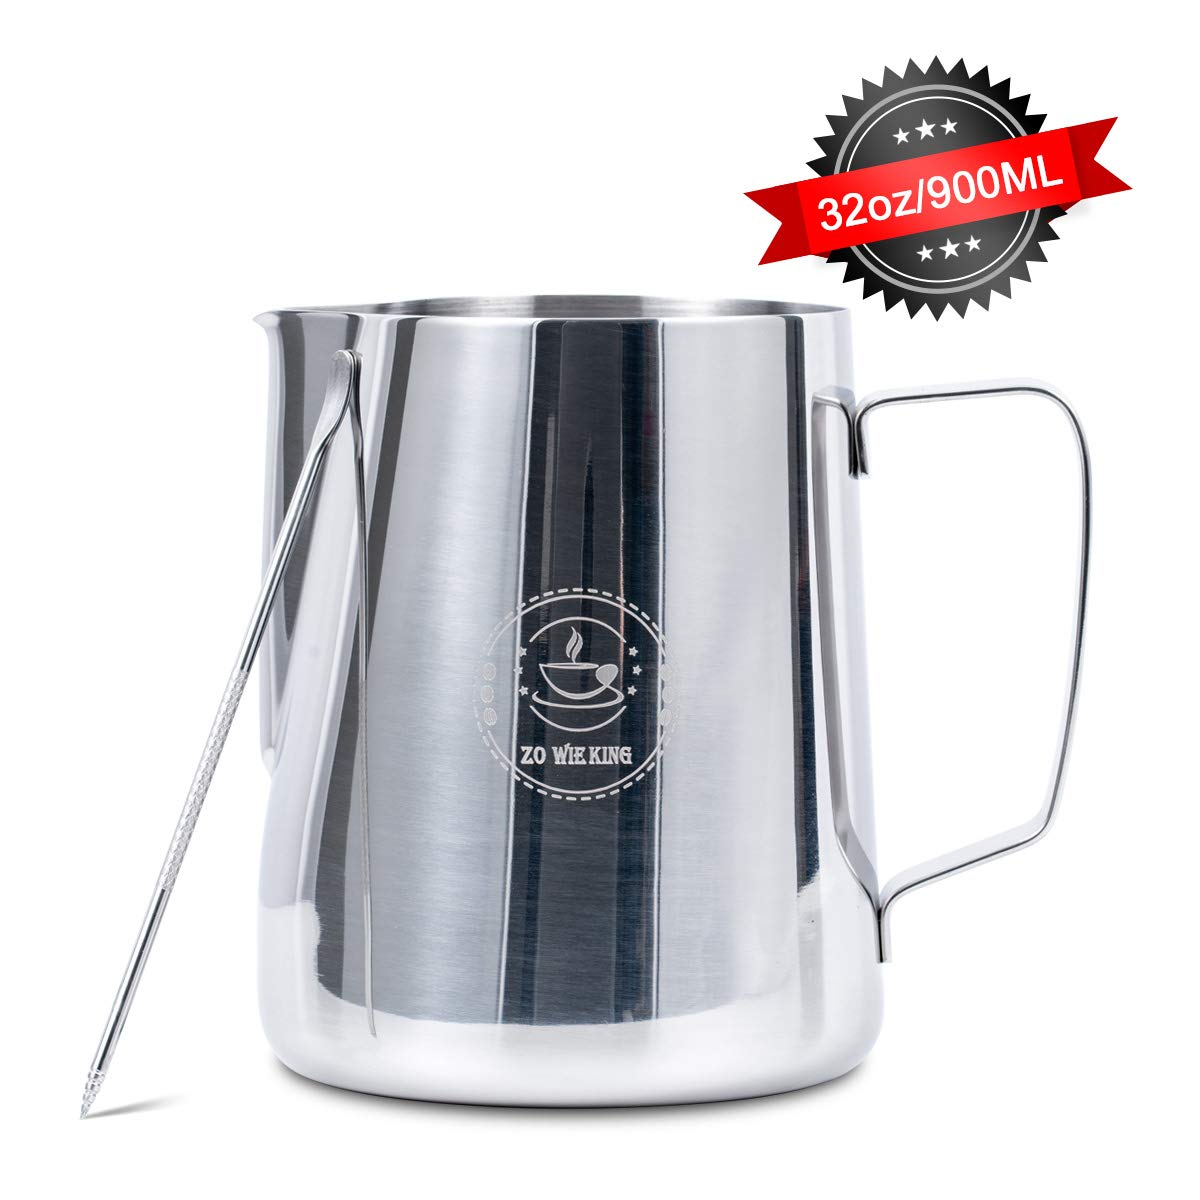 32oz 900ml Stainless Steel Milk Frothing Pitcher with Latte Art Pen, Coffee Pitcher for Espresso Machines Latte Art by ZOWIE KING